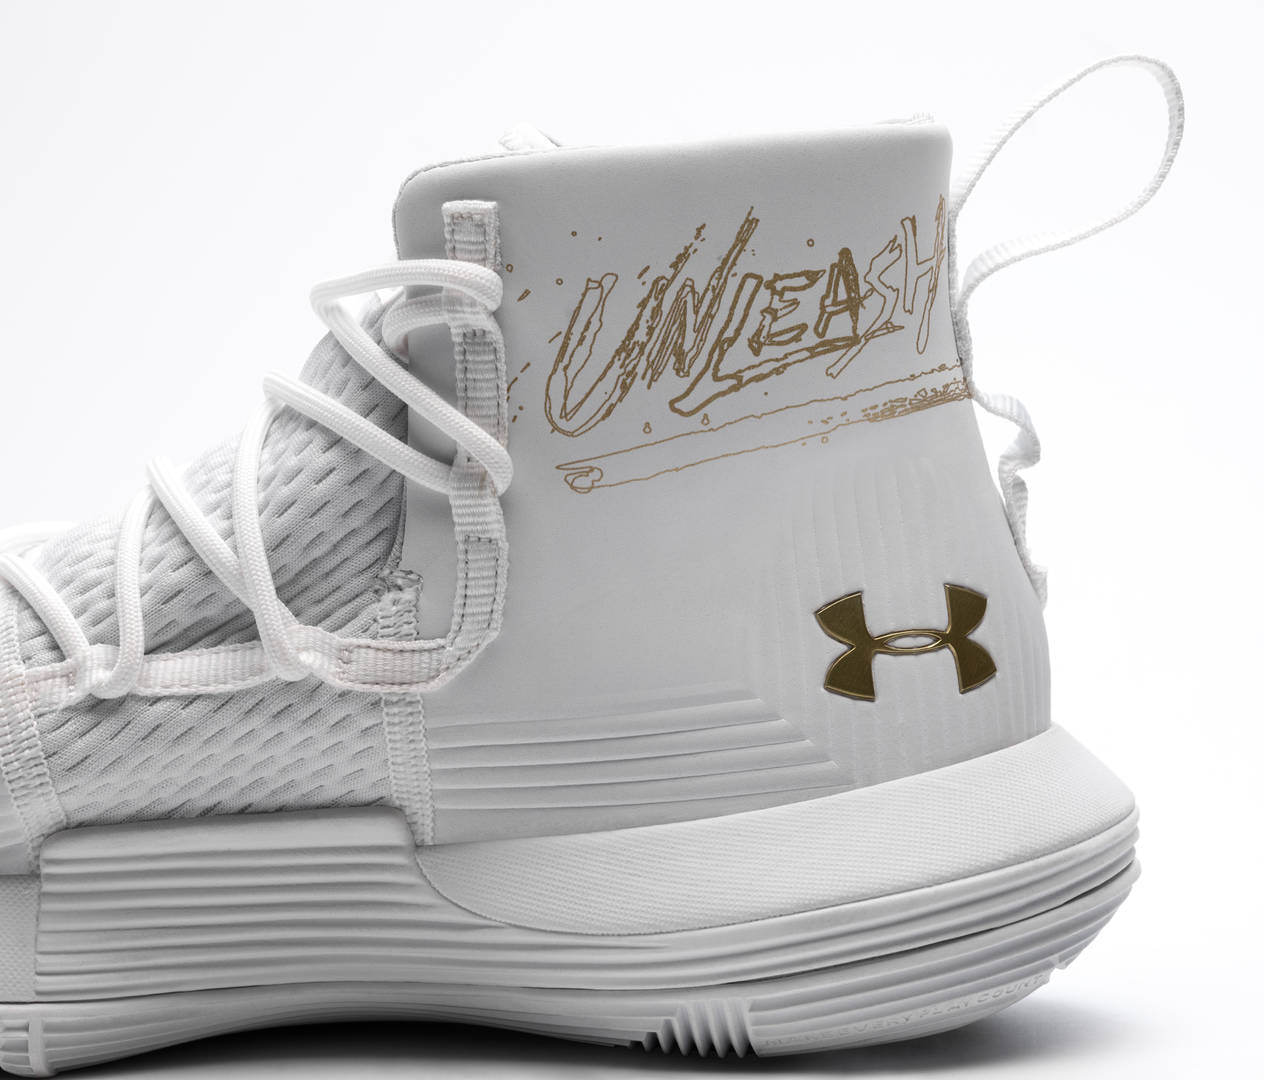 Under Armour Unveils Exclusive Sneakers For Their 17 NCAA Tournament Teams